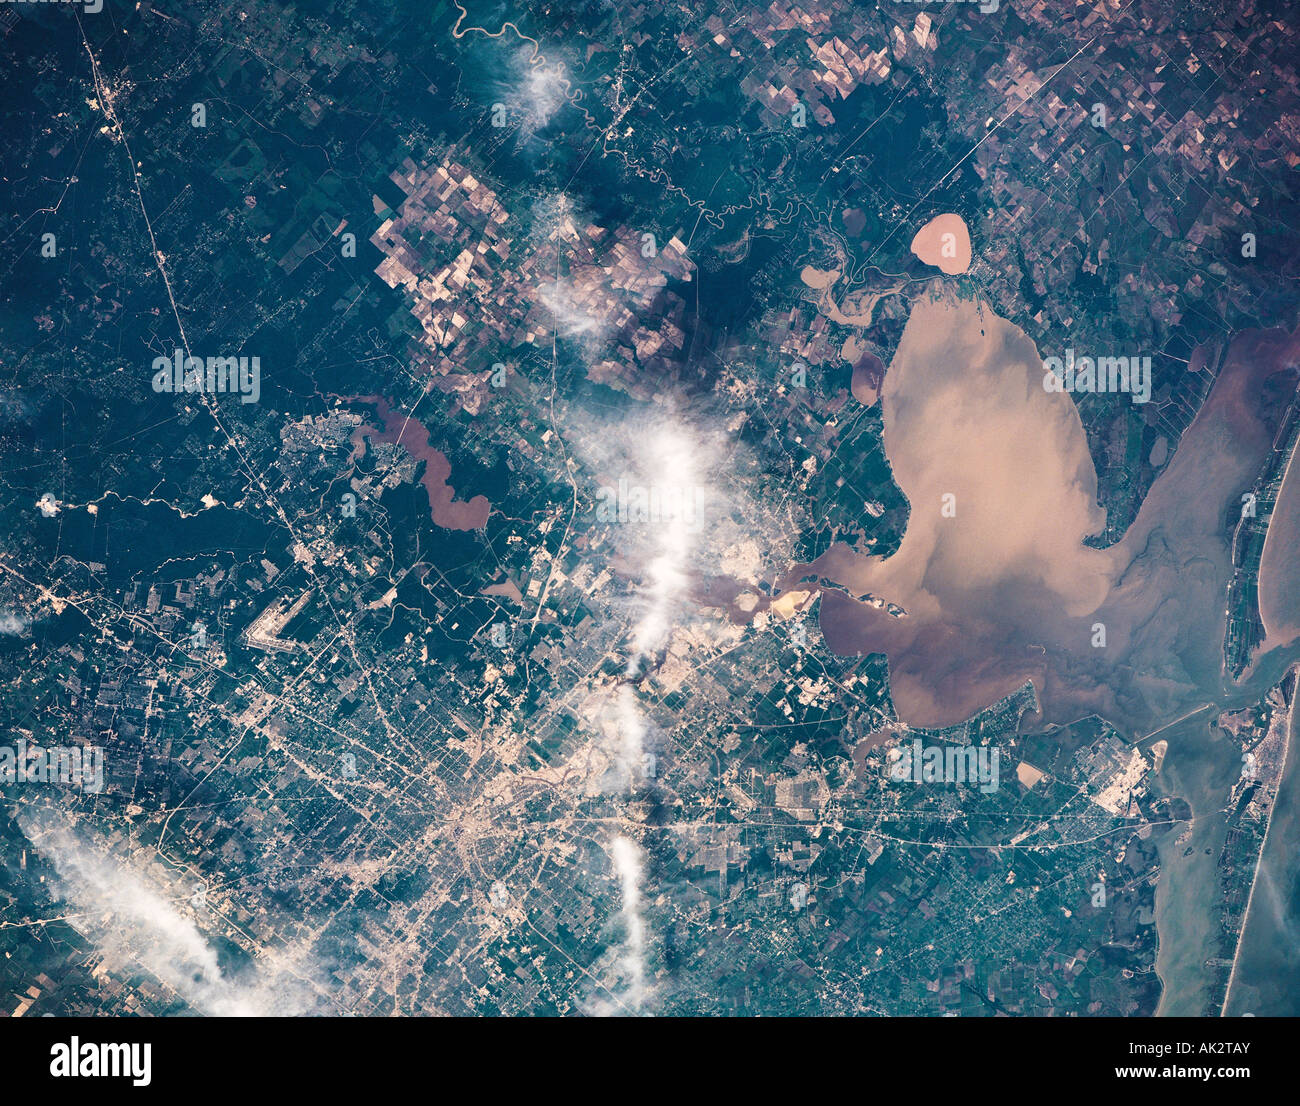 Travel, United States of America, Texas, Houston metropolitan area, View from space, - Stock Image